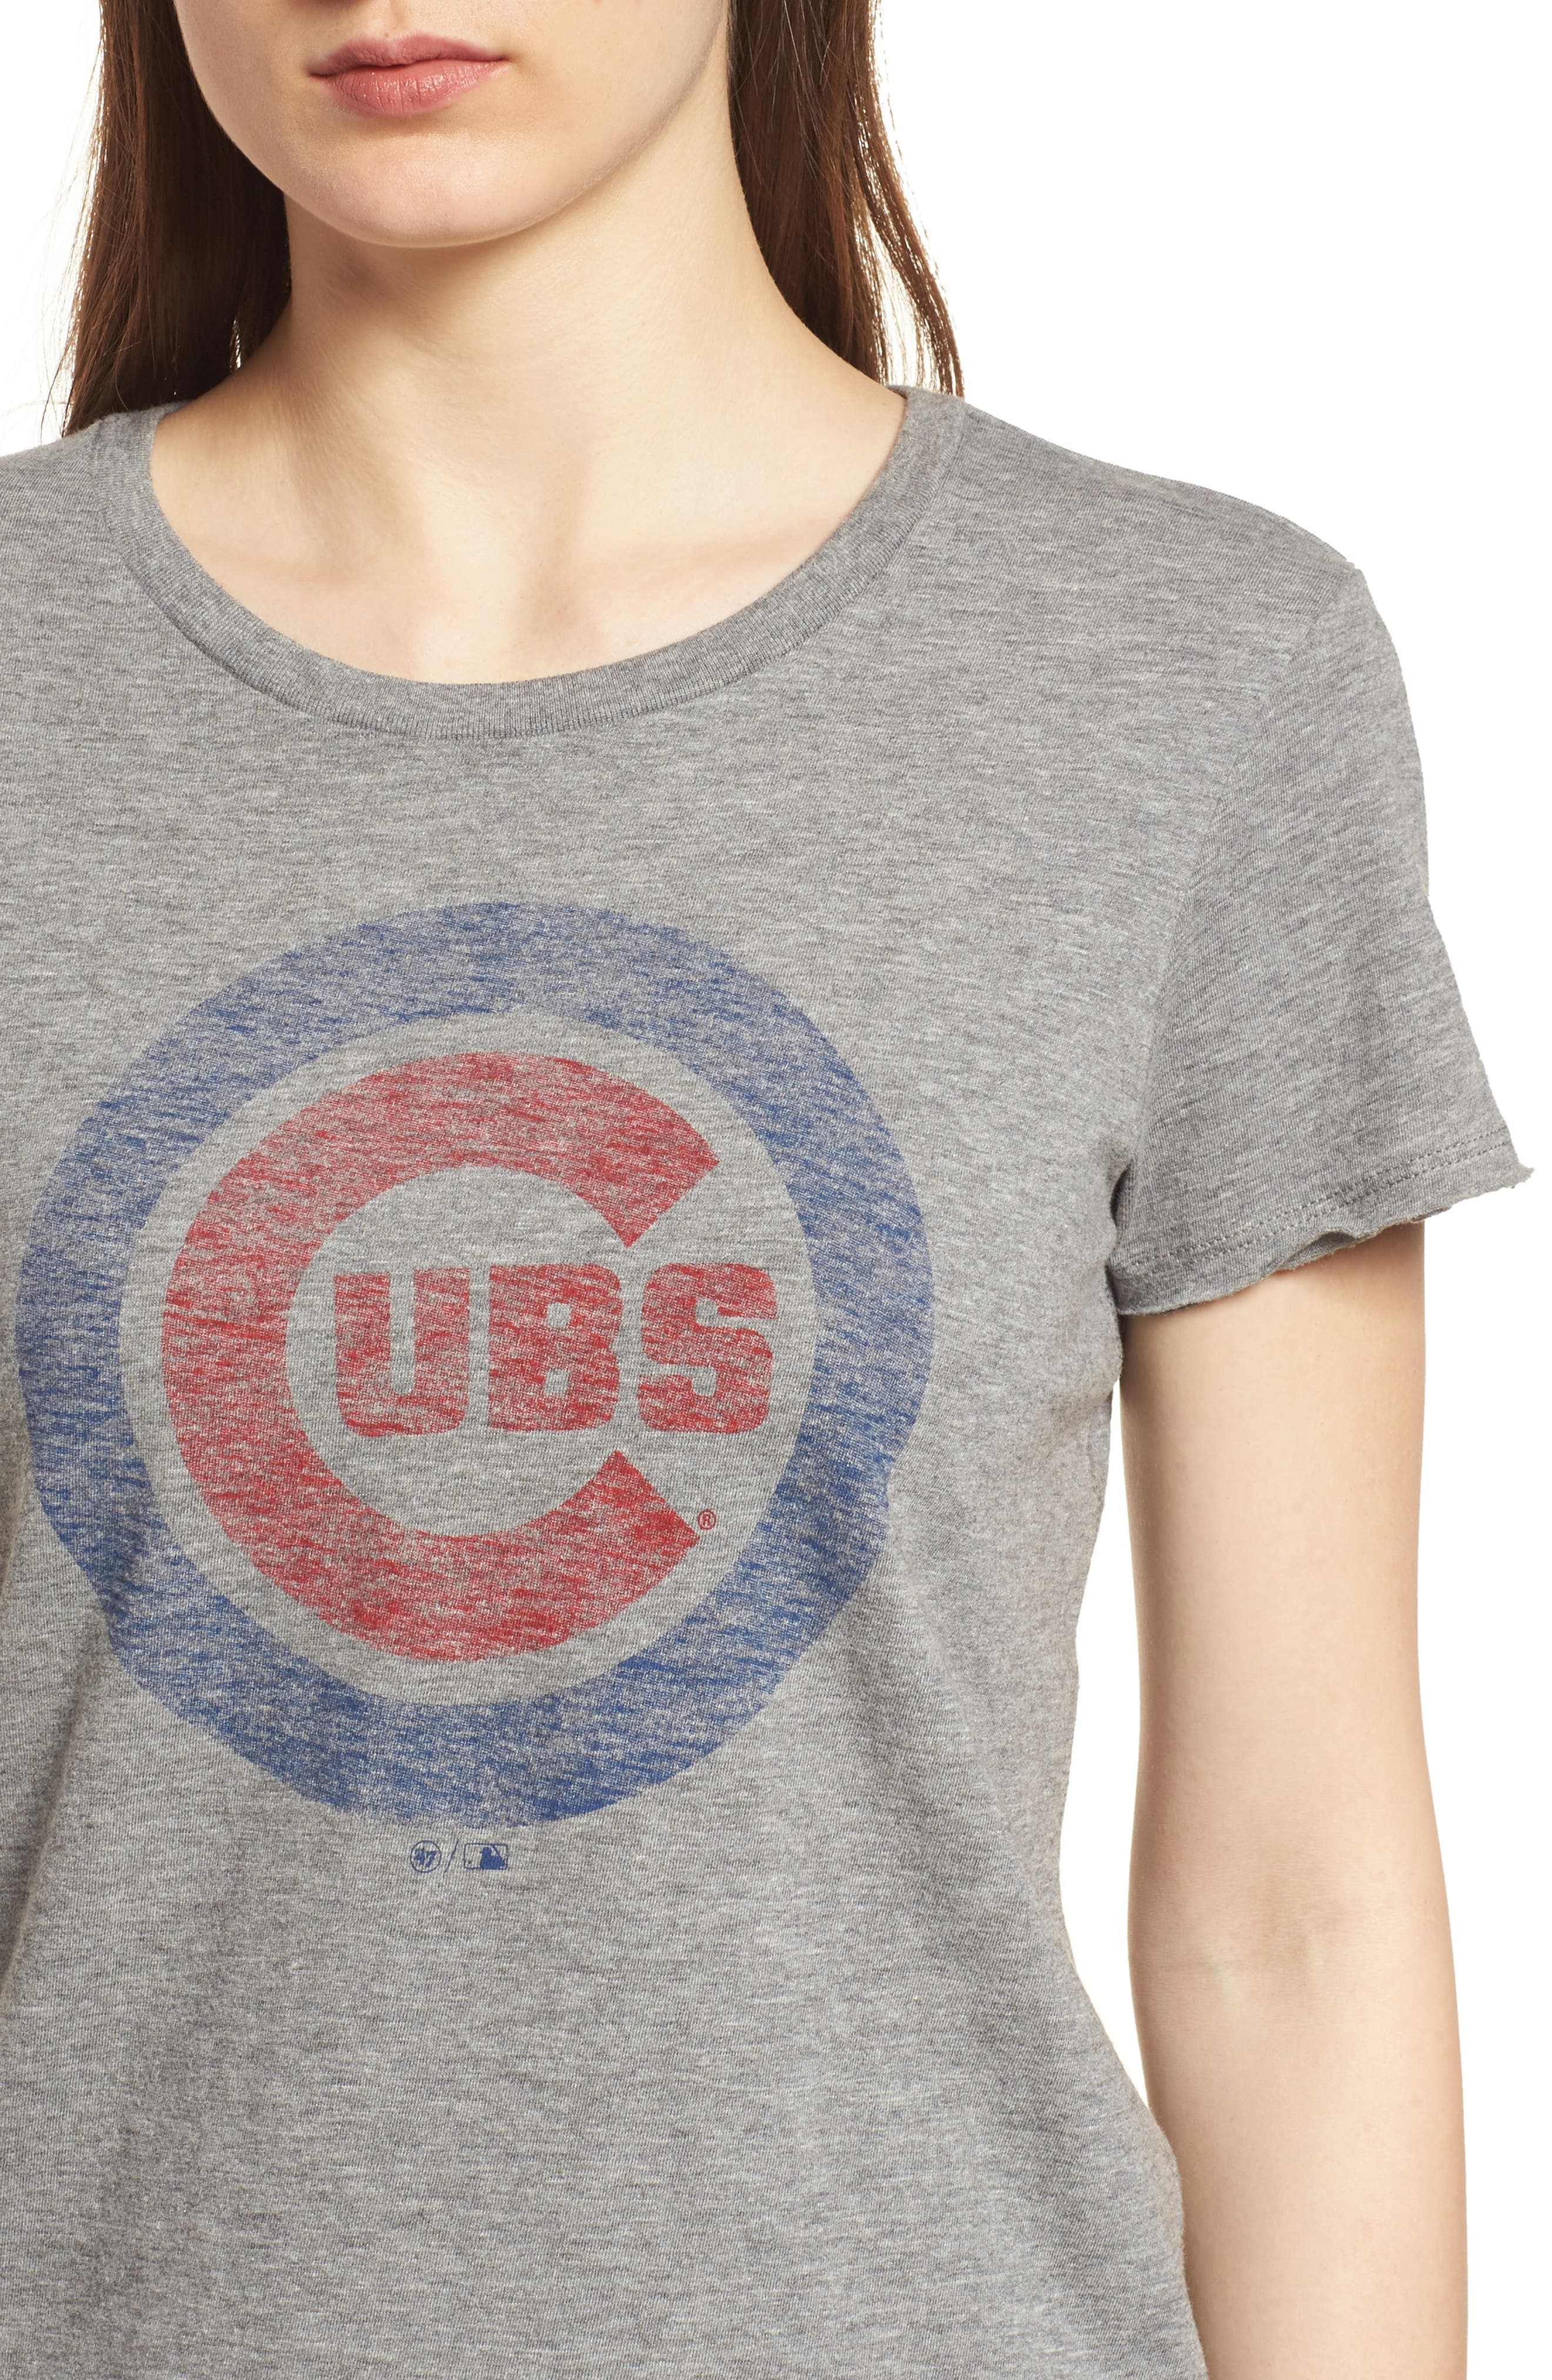 Chicago Cubs Fader Letter Tee,                             Alternate thumbnail 4, color,                             Slate Grey